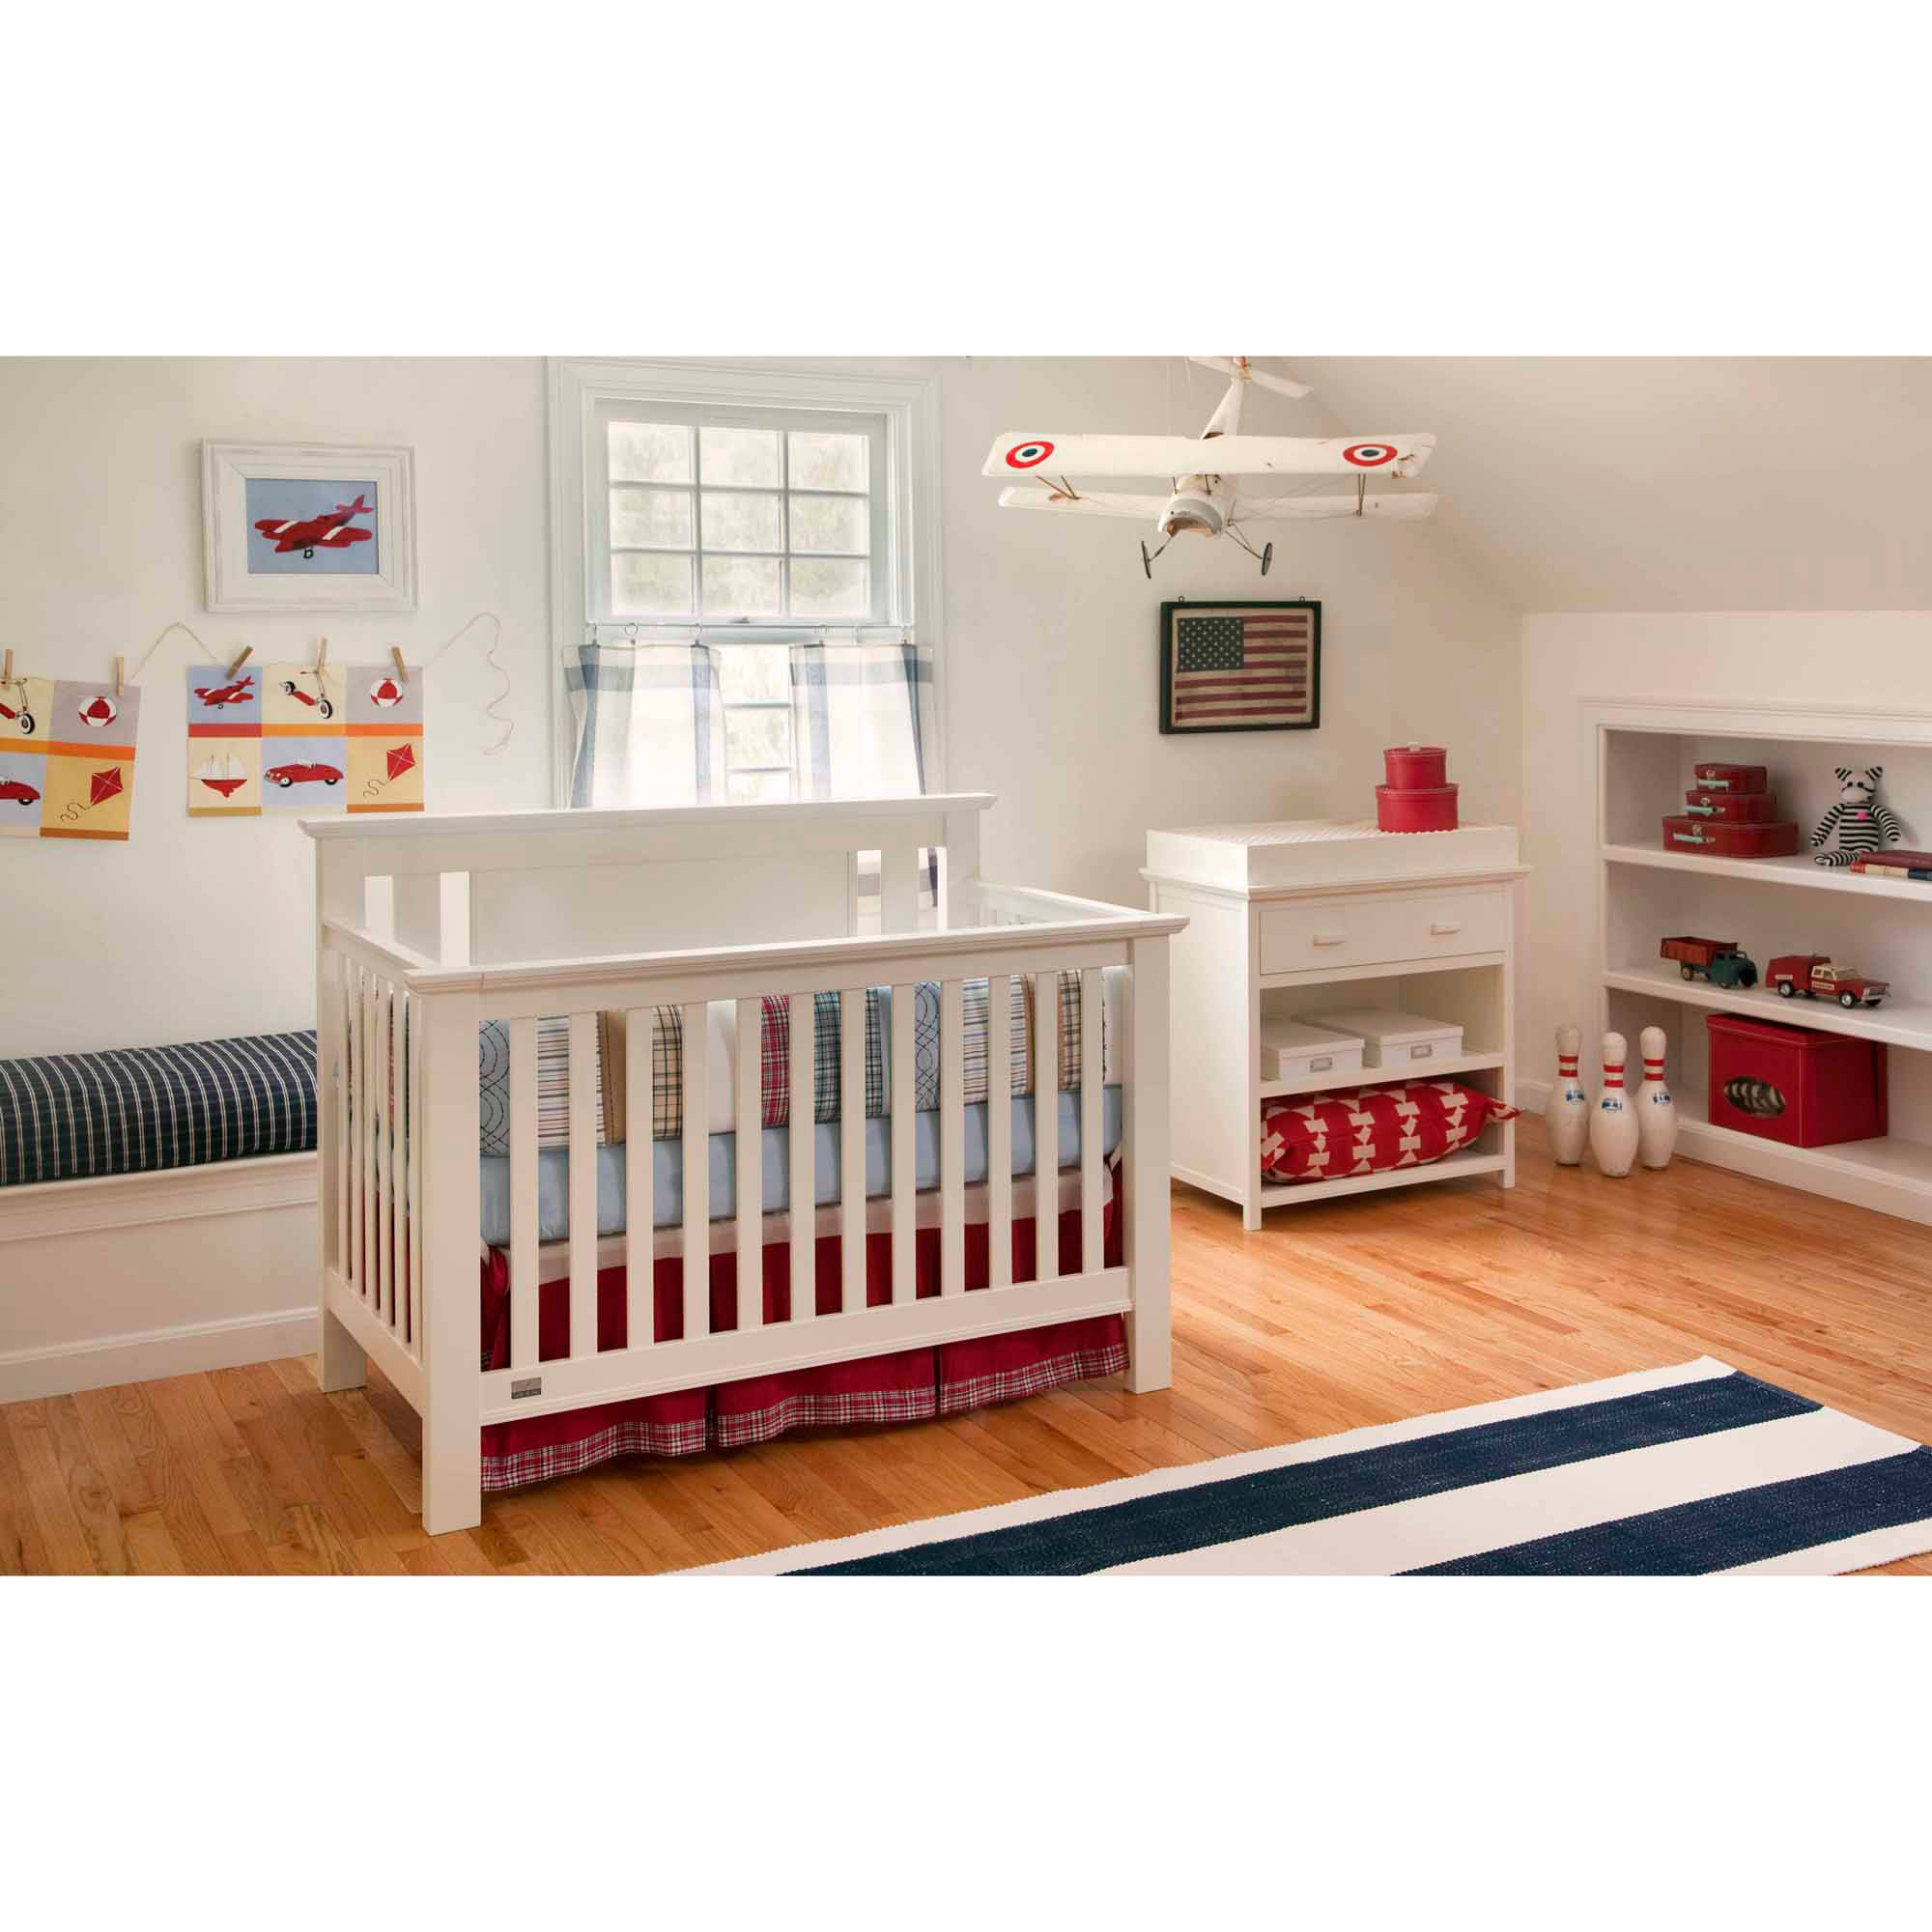 Lolly & Me Delaney 4-in-1 Convertible Crib White